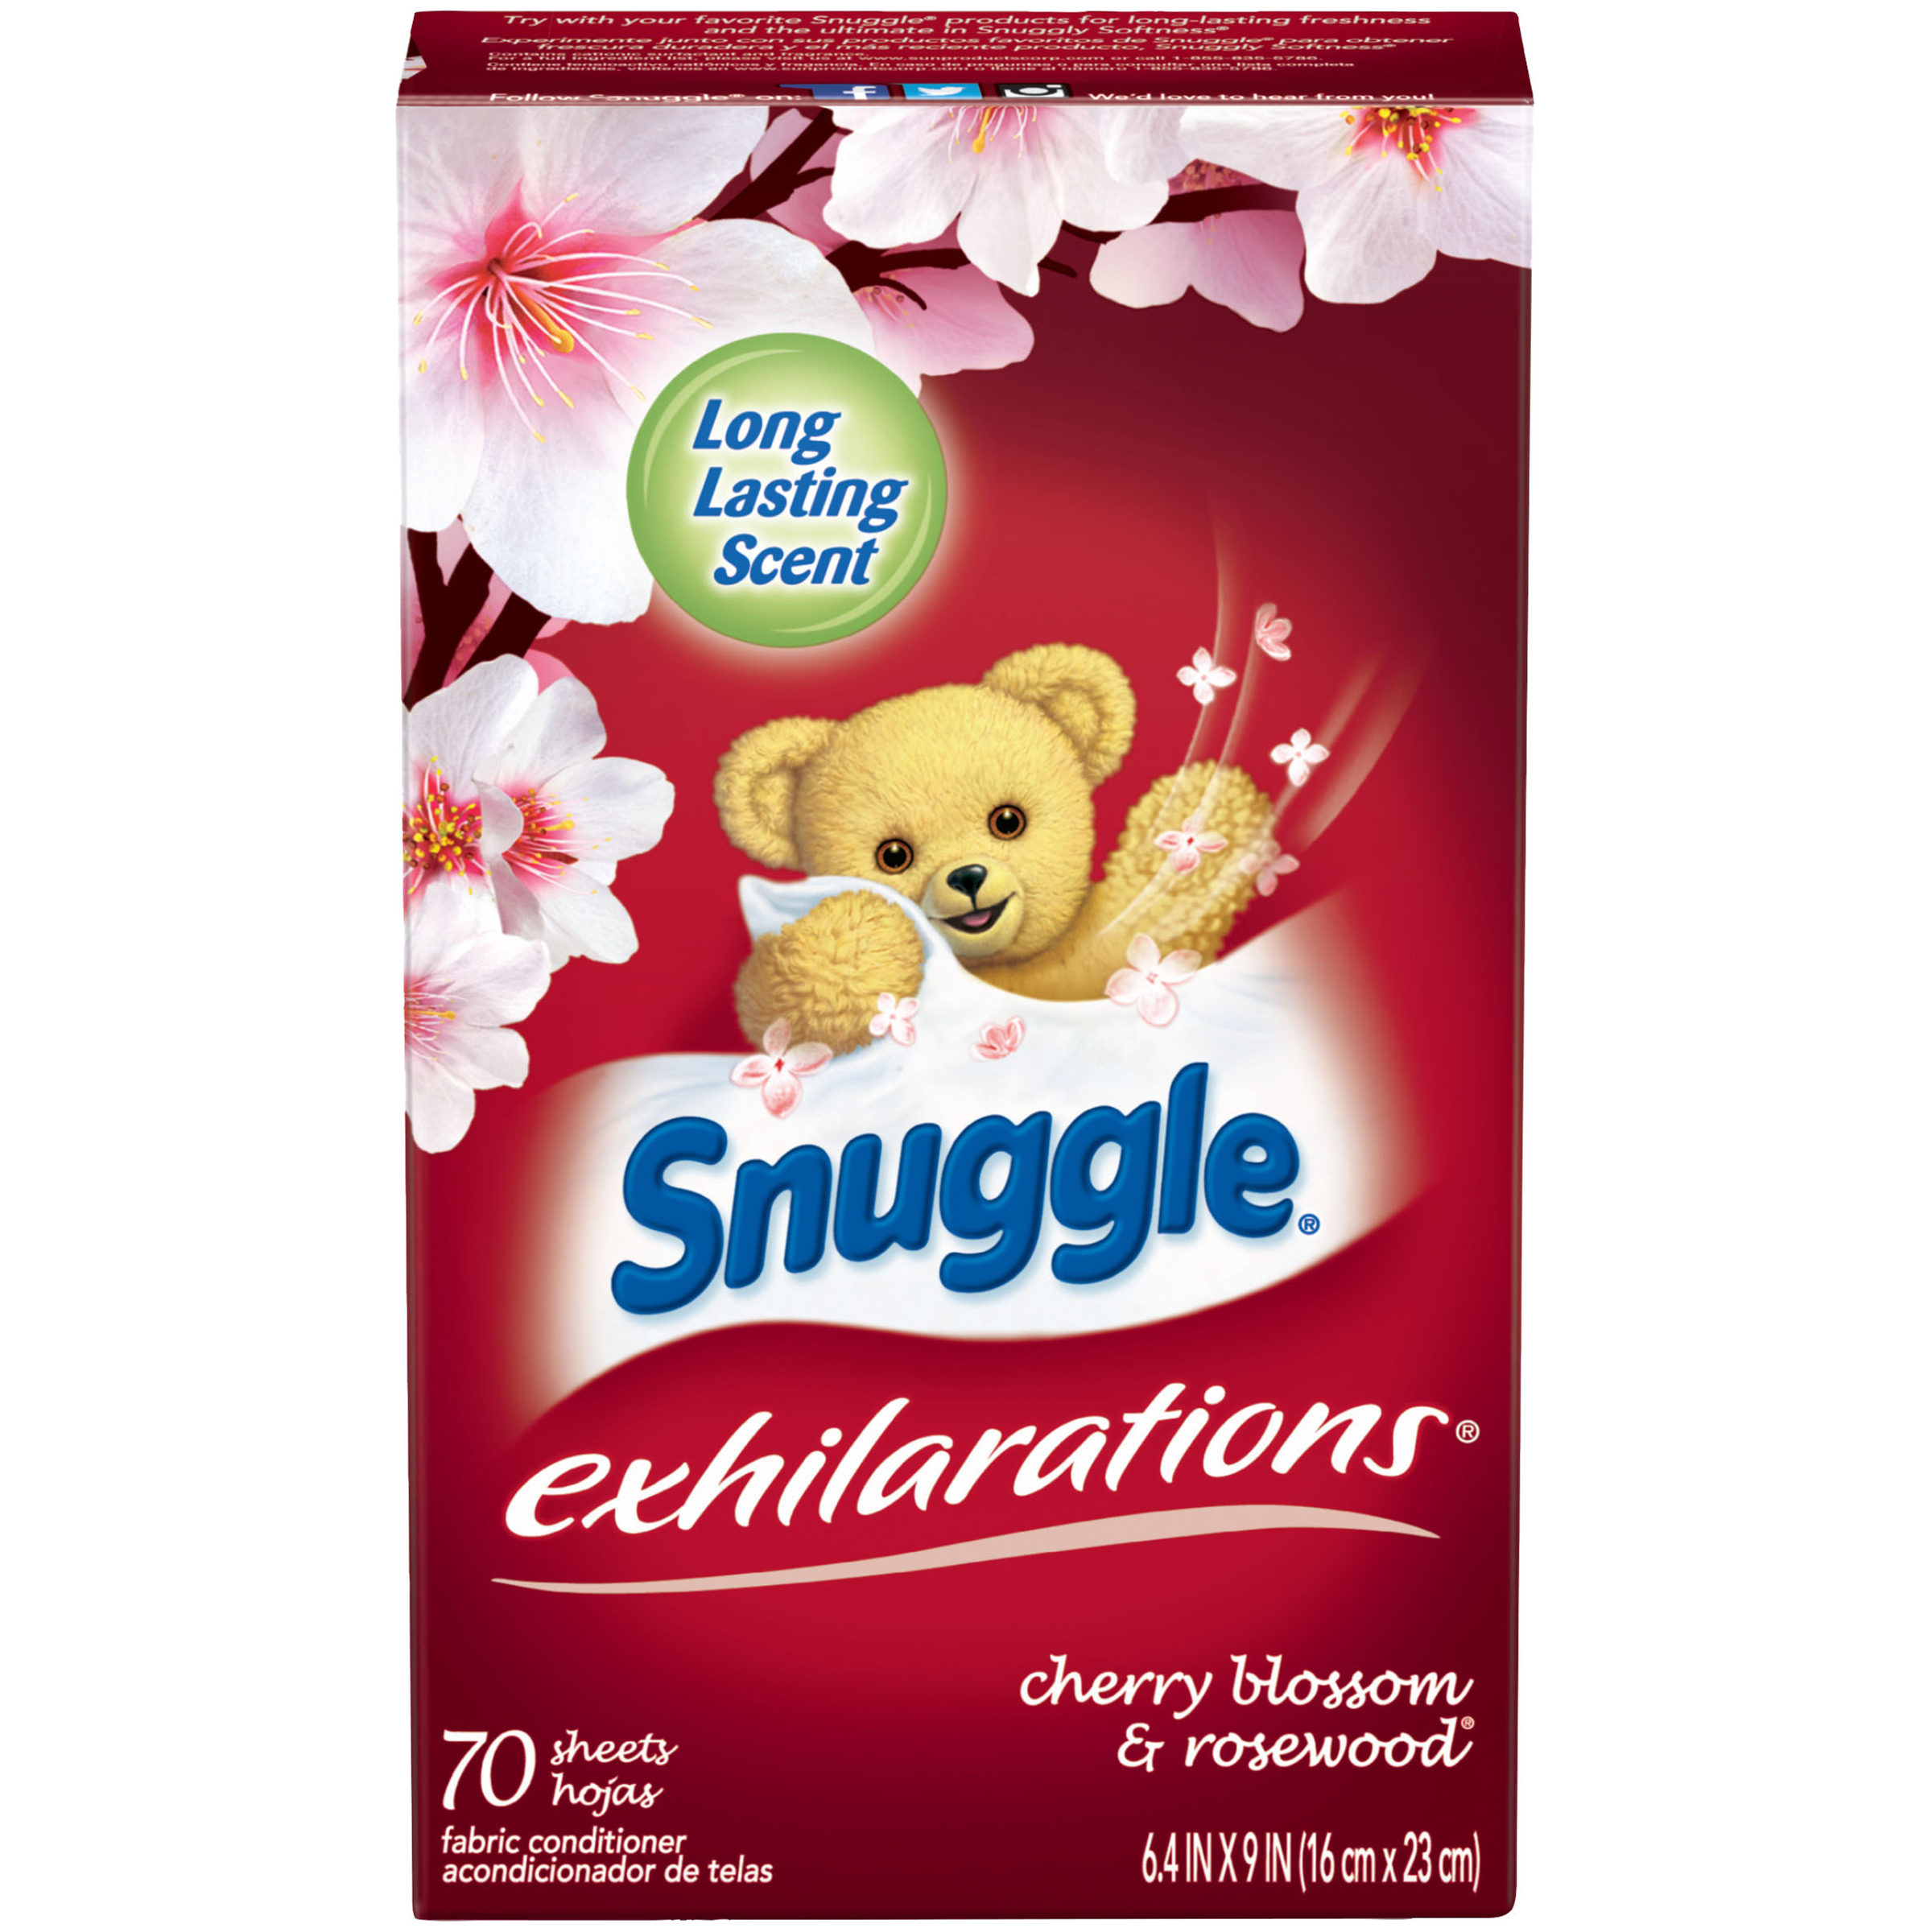 Snuggle Exhilarations Dryer Sheets, Cherry Blossom & Rosewood, 70 Sheets